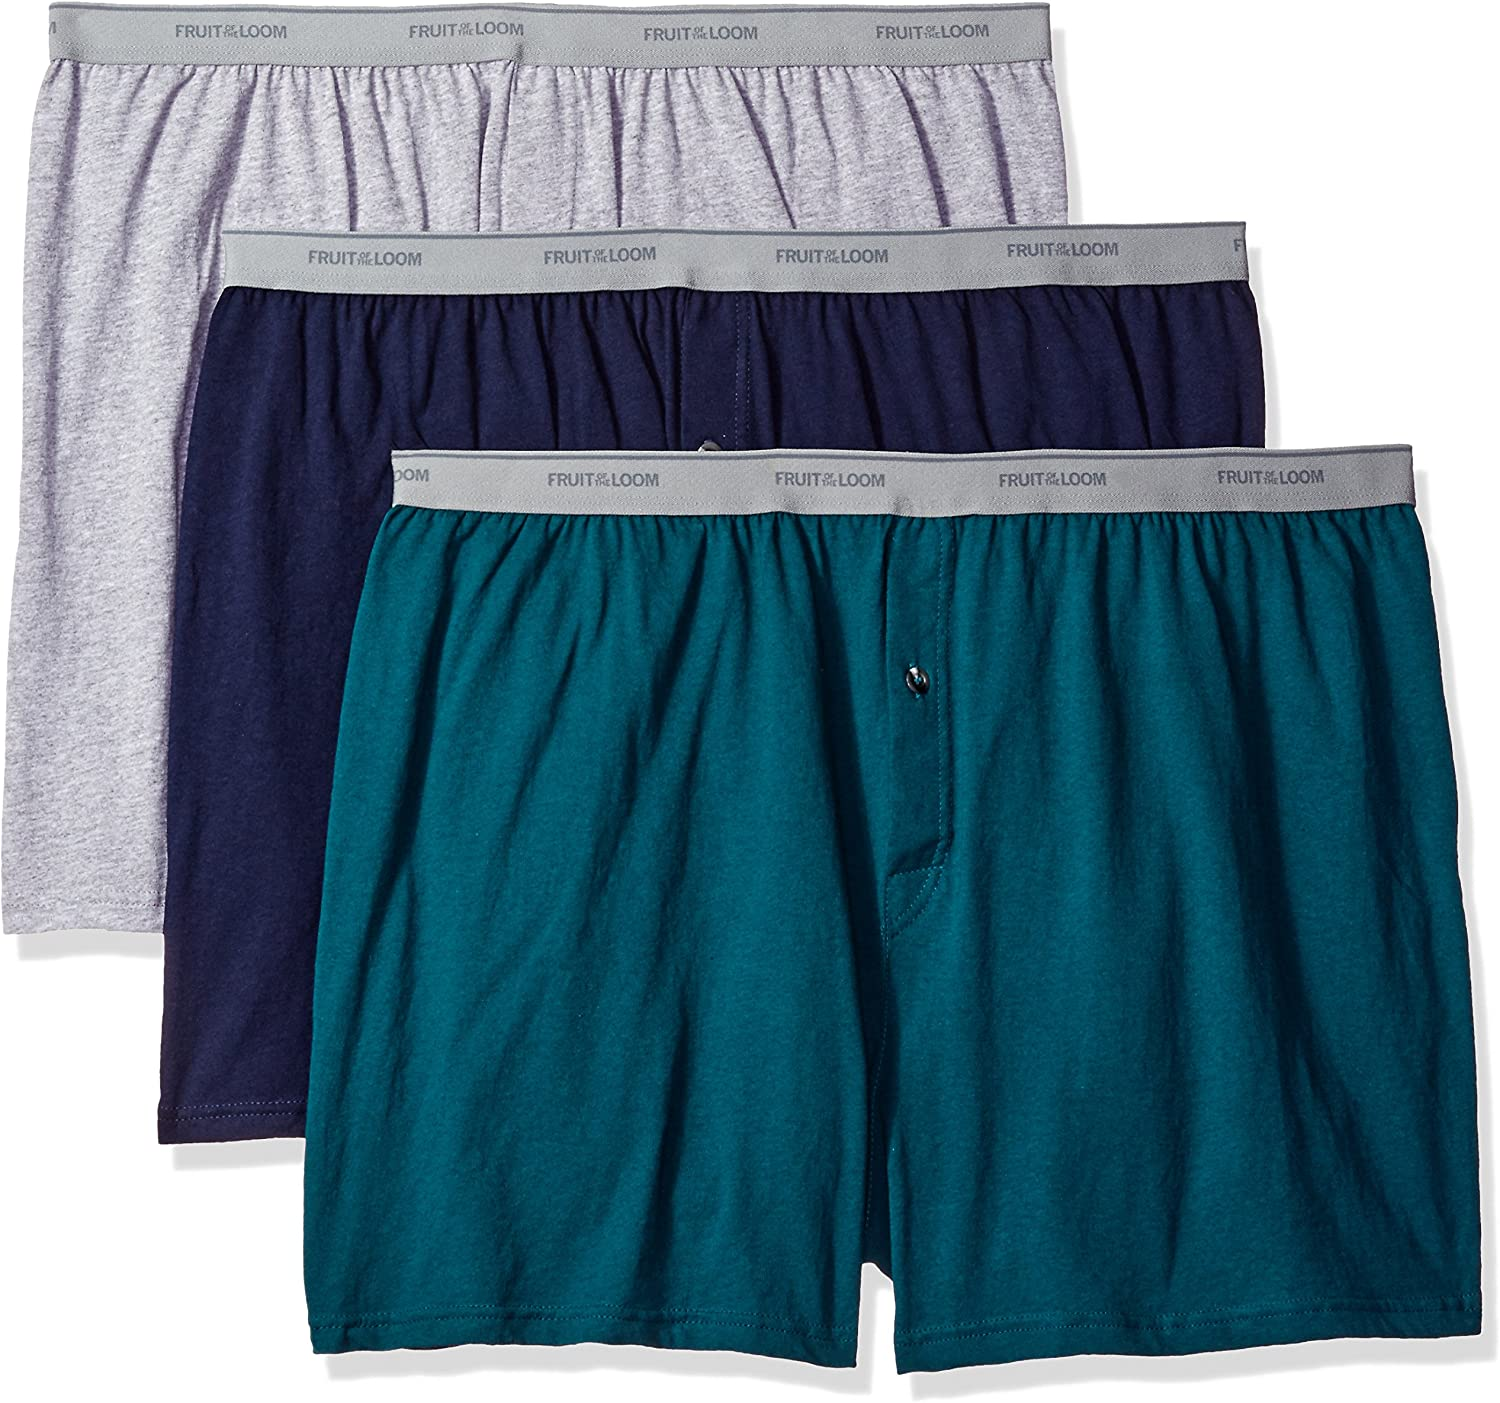 3-Pack Premium Fruit of the Loom BigMan Size Options Breathable Boxer Briefs